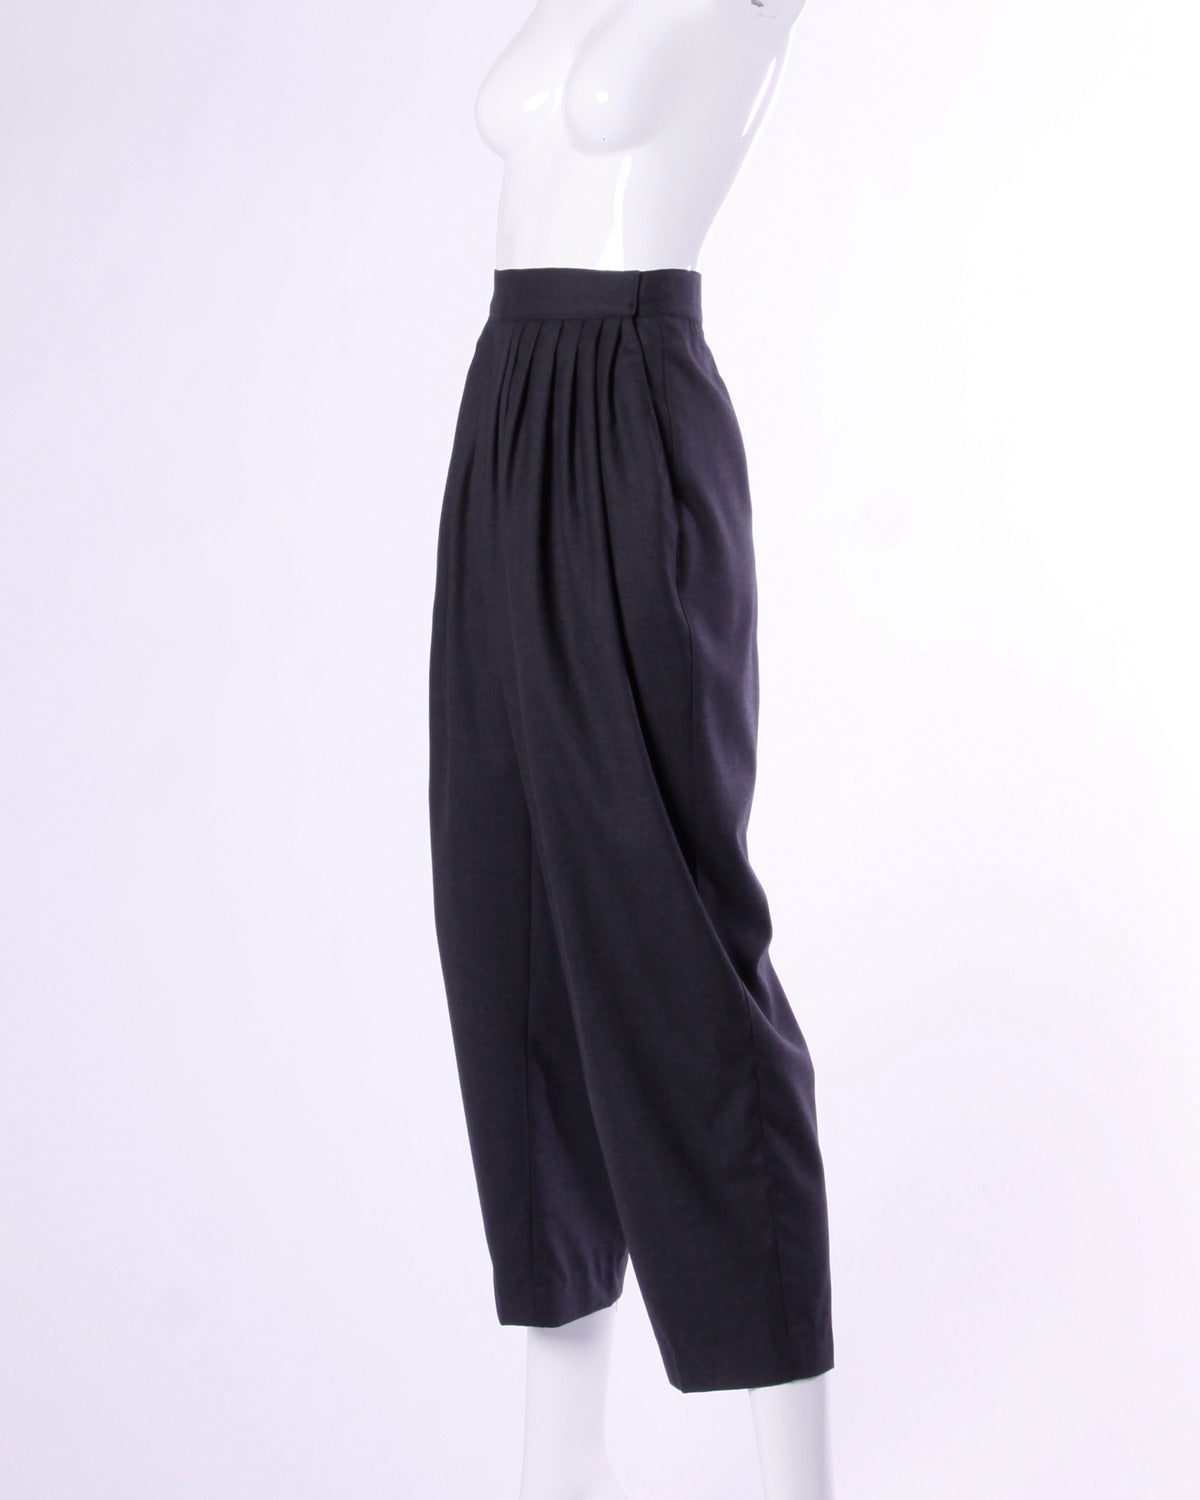 Gianni Versace Vintage 1980s 80s Gray Wool Pleated Pants or Trousers 4